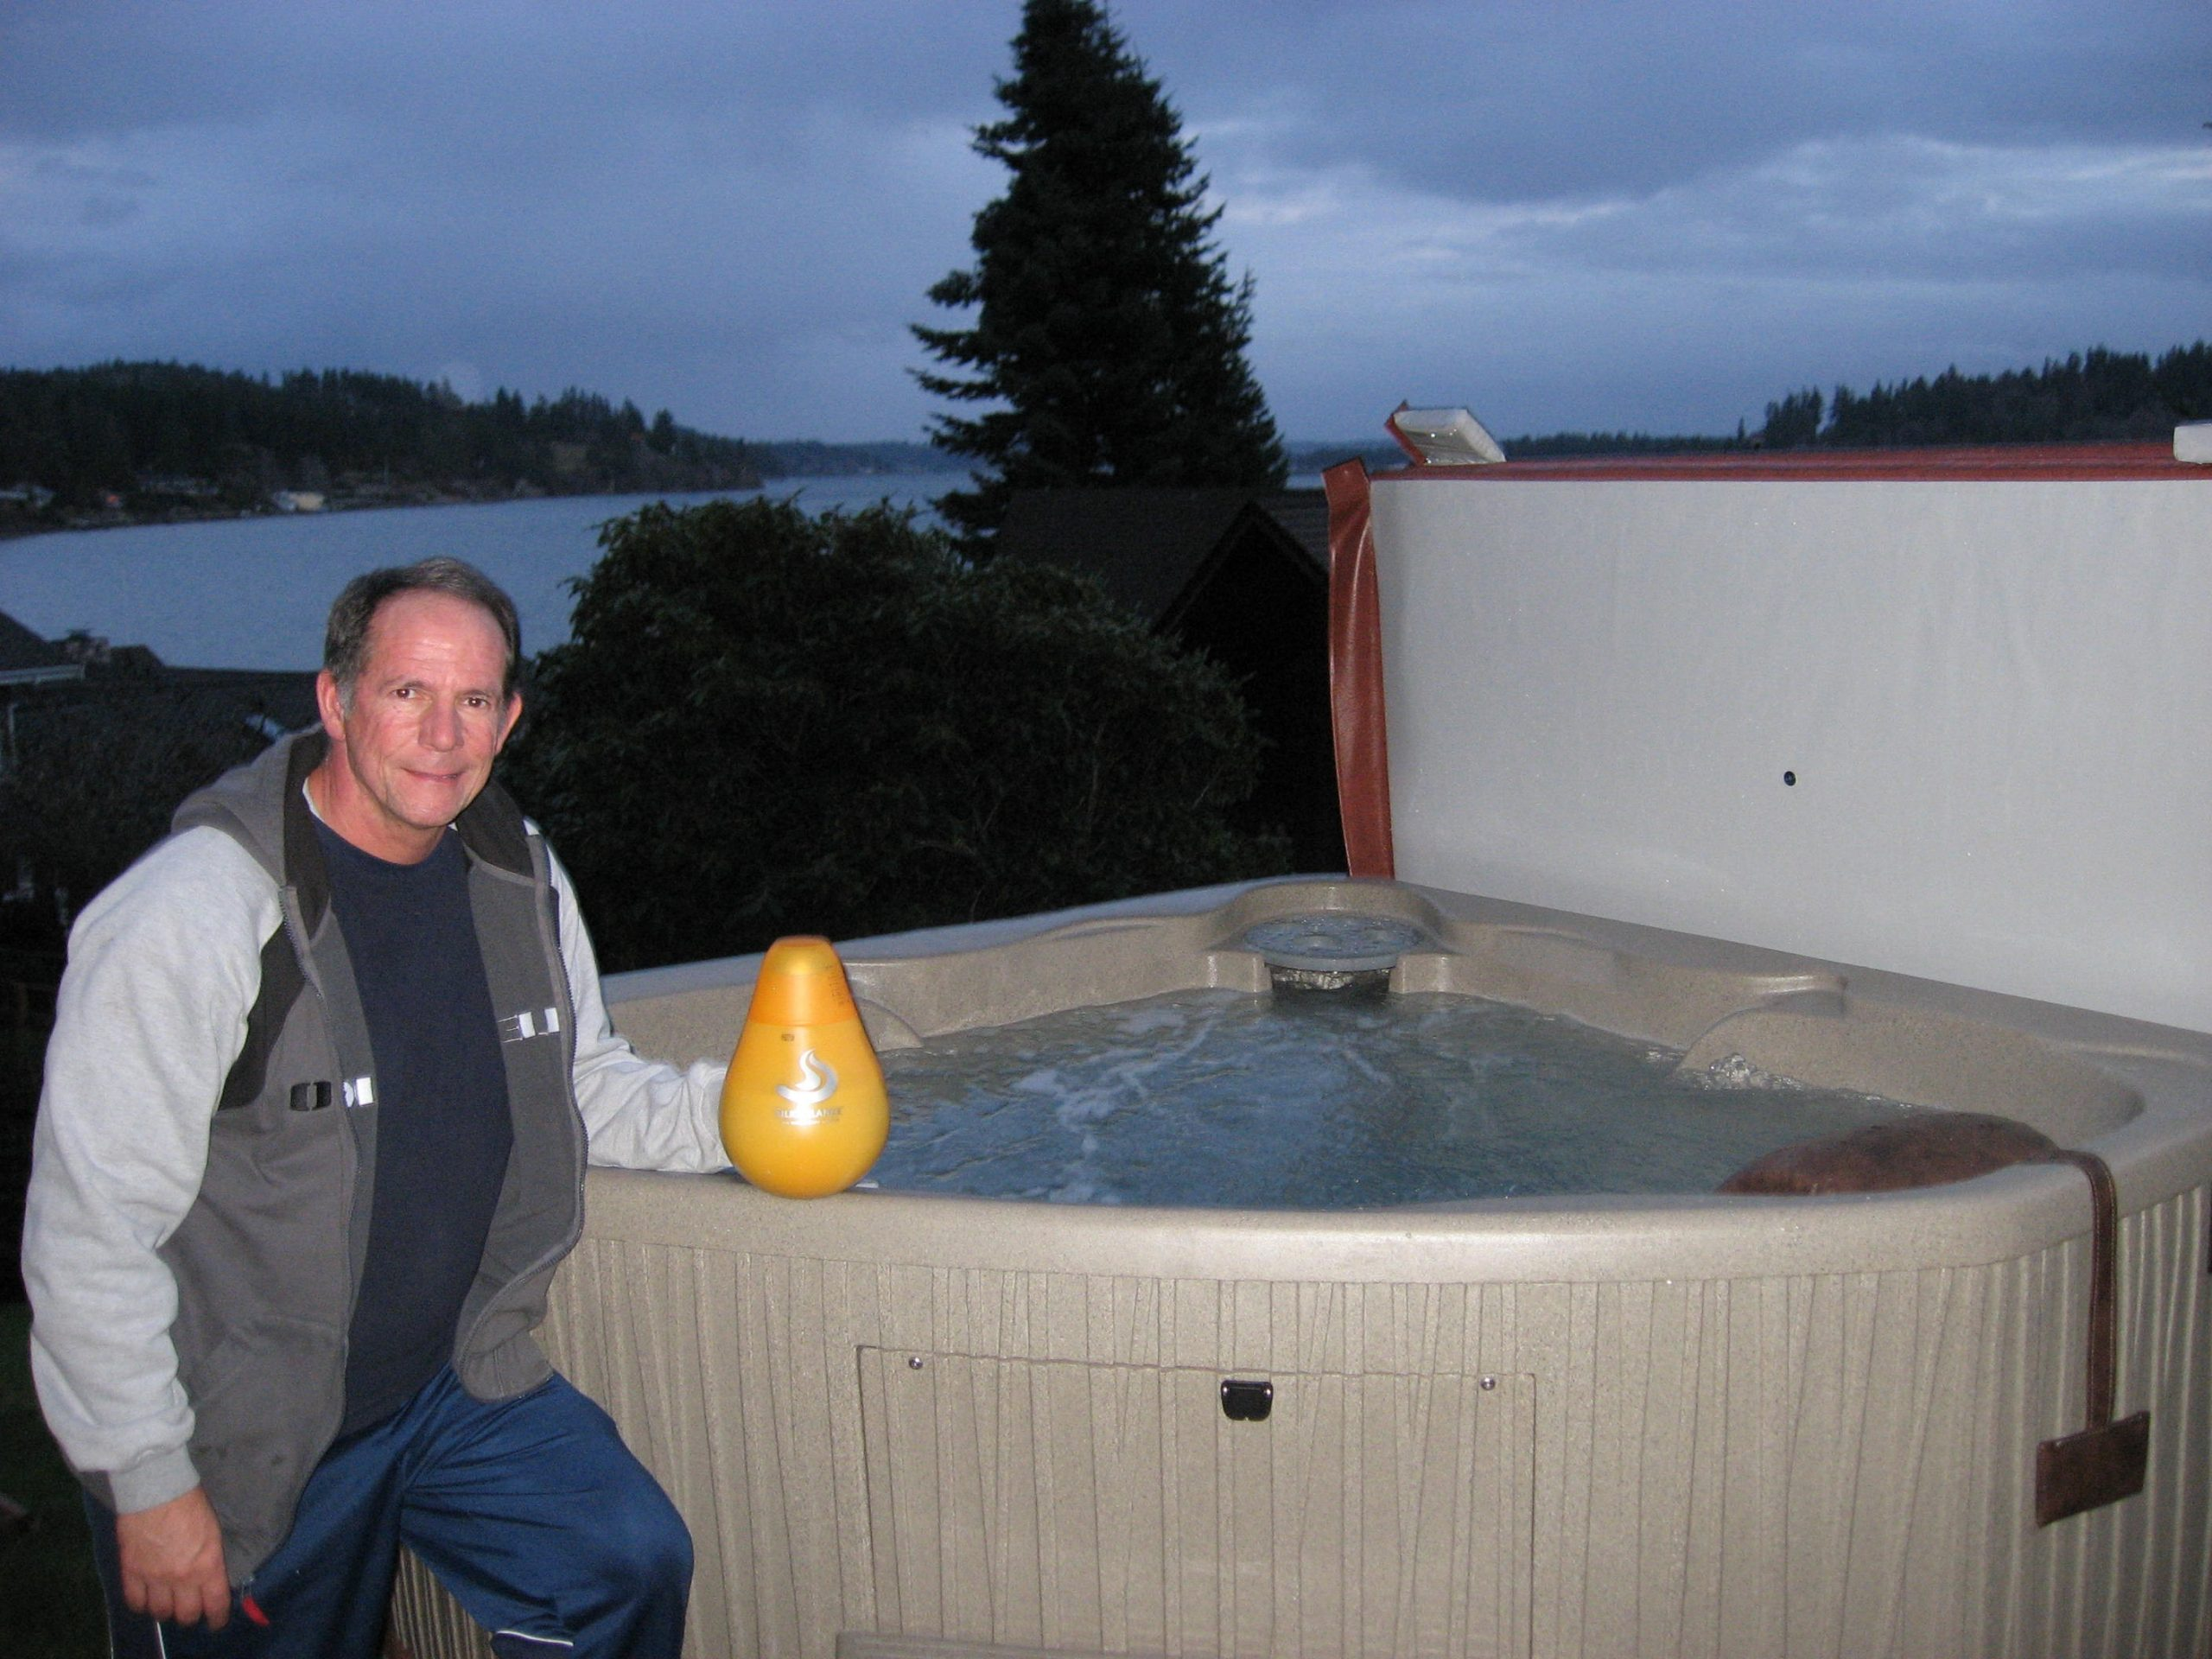 Hot Tub Water Care Has Come a Long Way-SilkBalance is Amazing Says Happy User